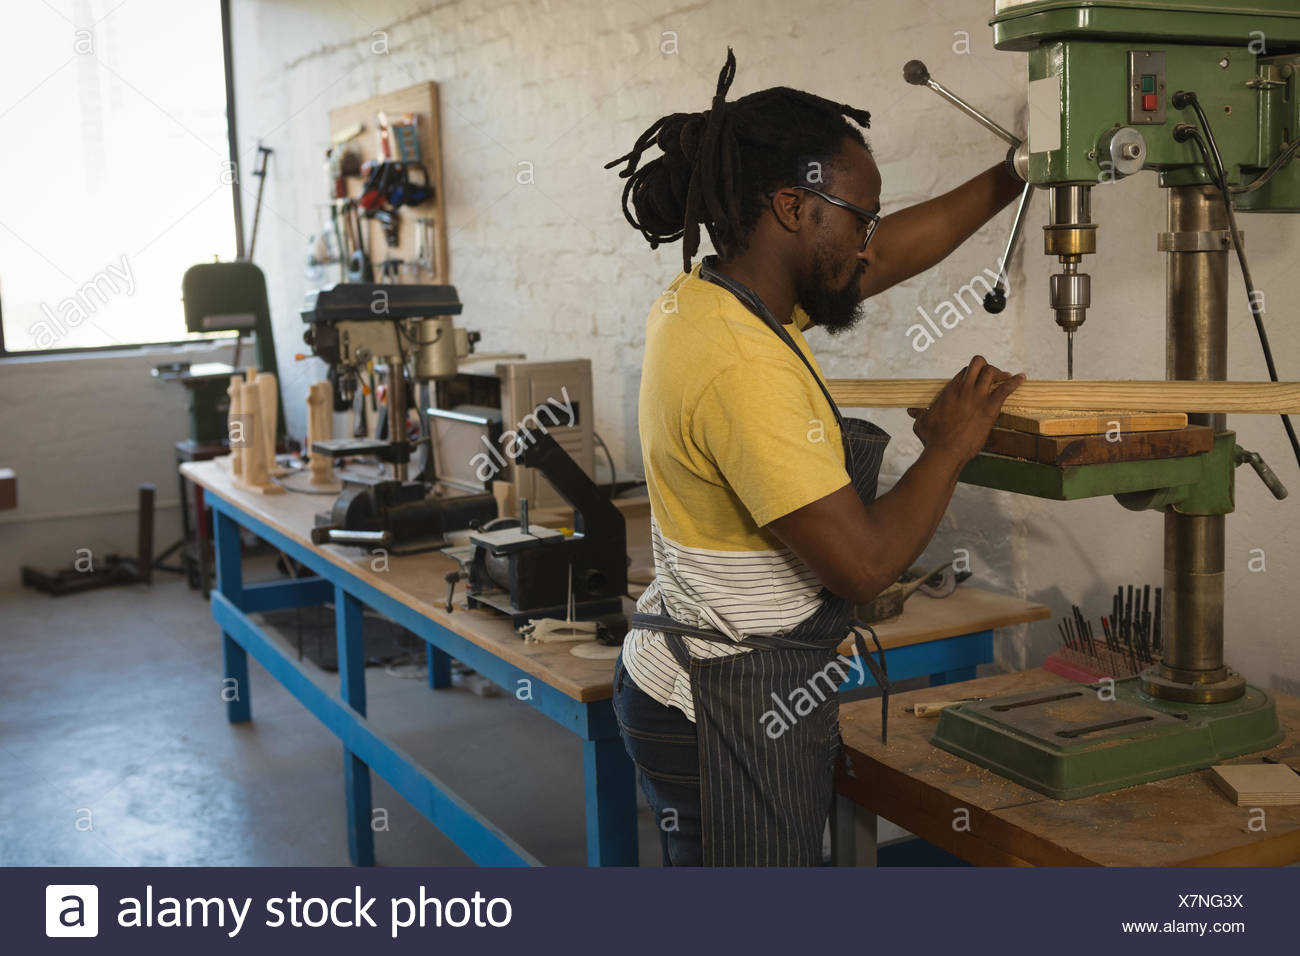 Carpenter drilling wooden plank with machine - Stock Image